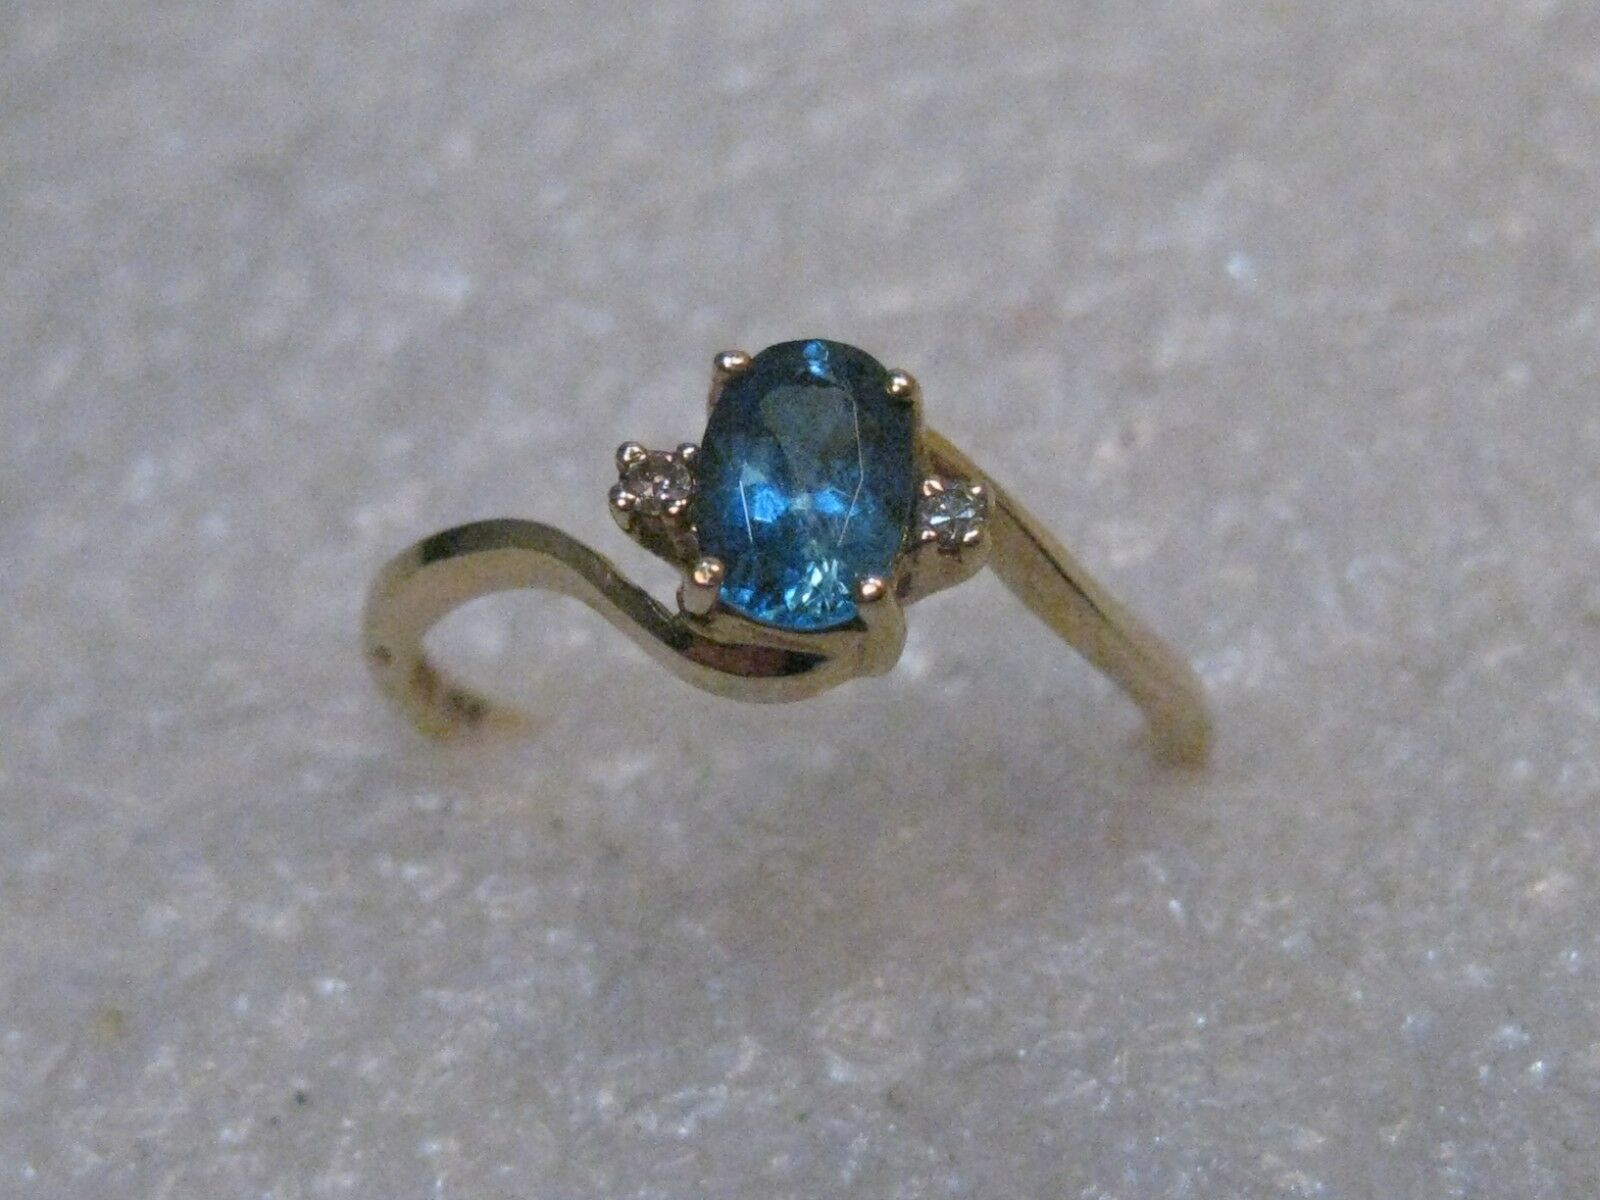 10kt gold Oval Aquamarine Ring, Diamonds, .33 ctw, Size 5, 1.29 gr., signed HU